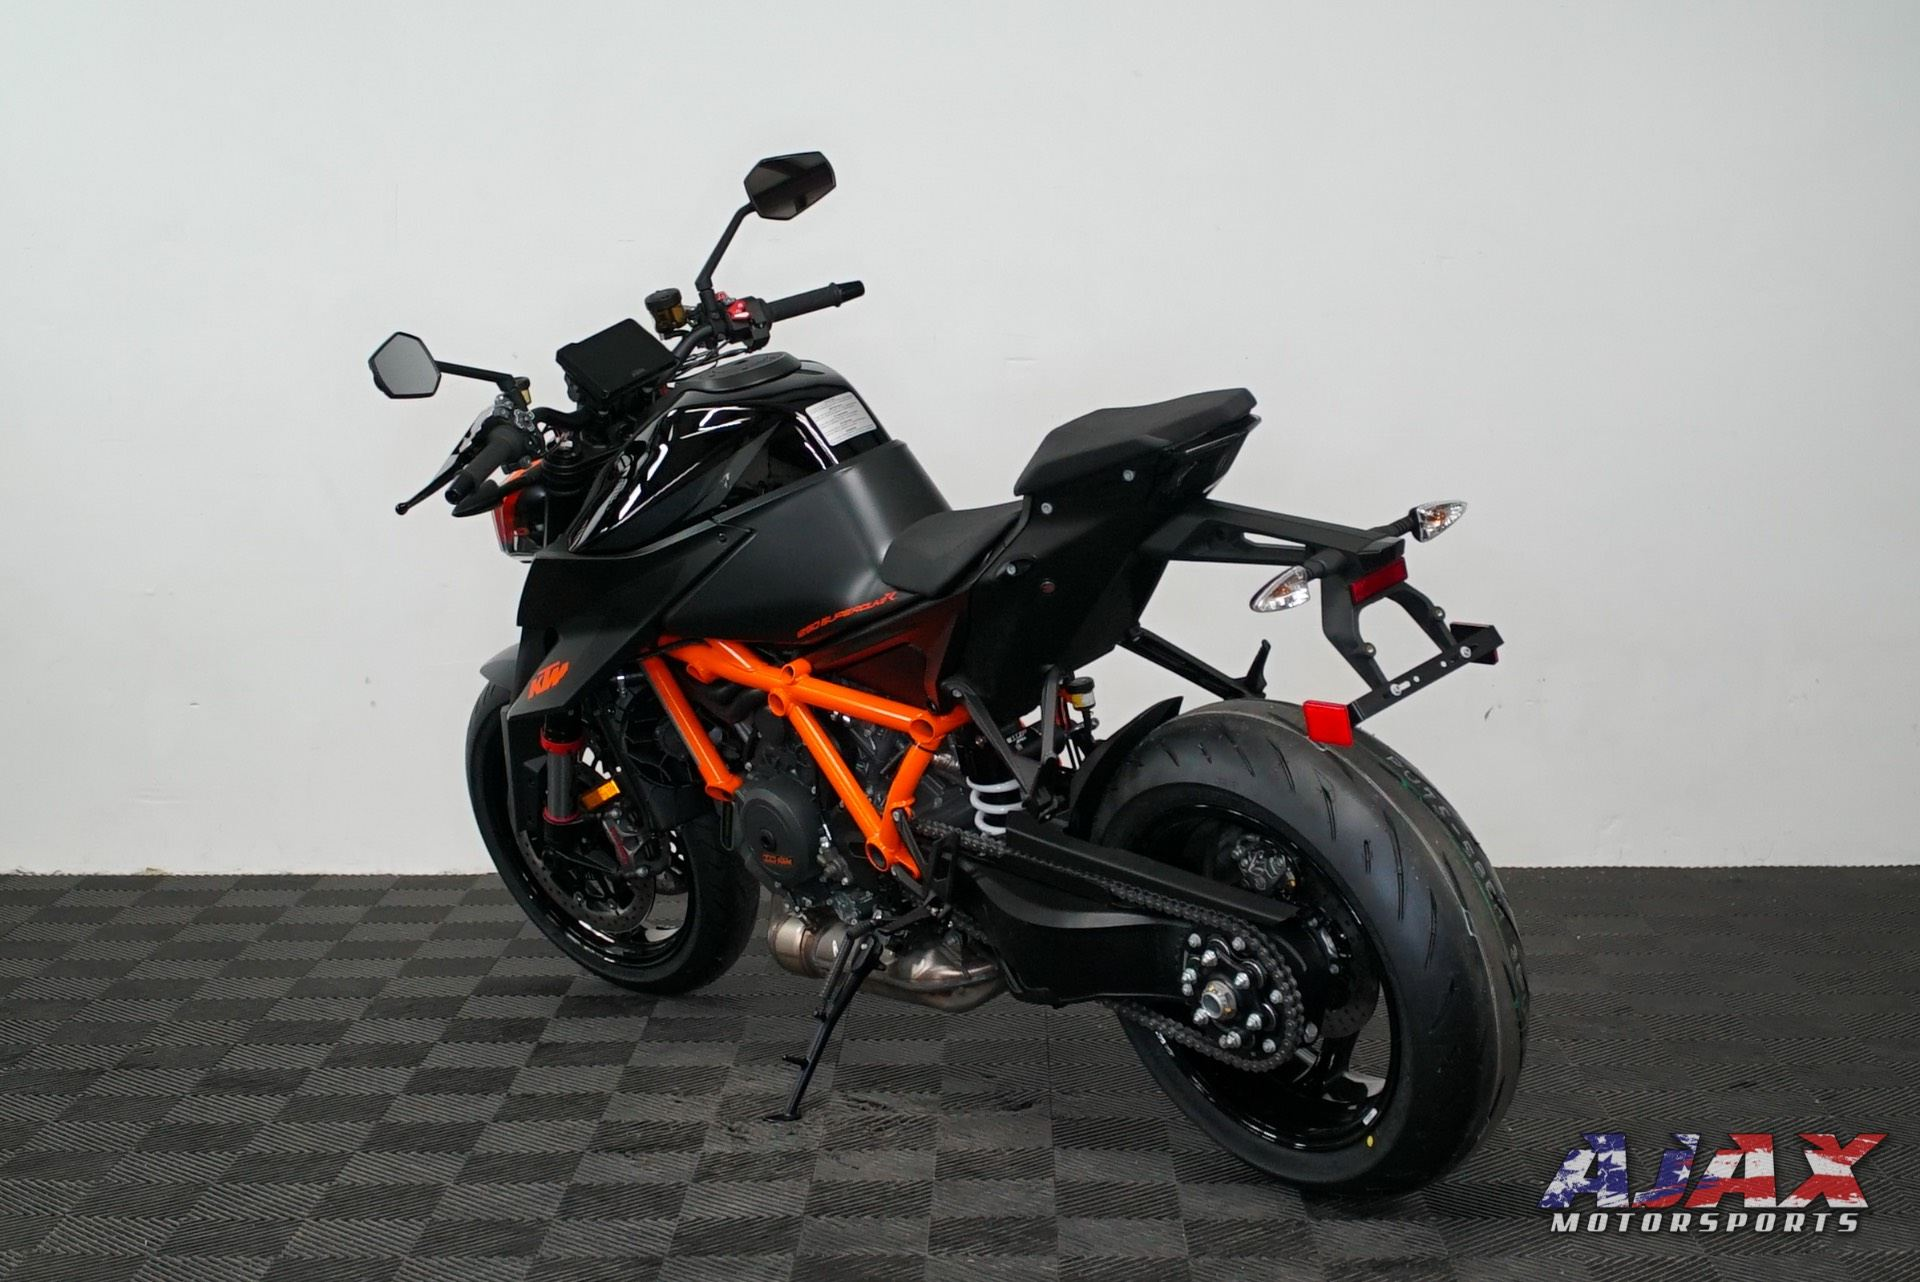 2020 KTM 1290 Super Duke R in Oklahoma City, Oklahoma - Photo 6